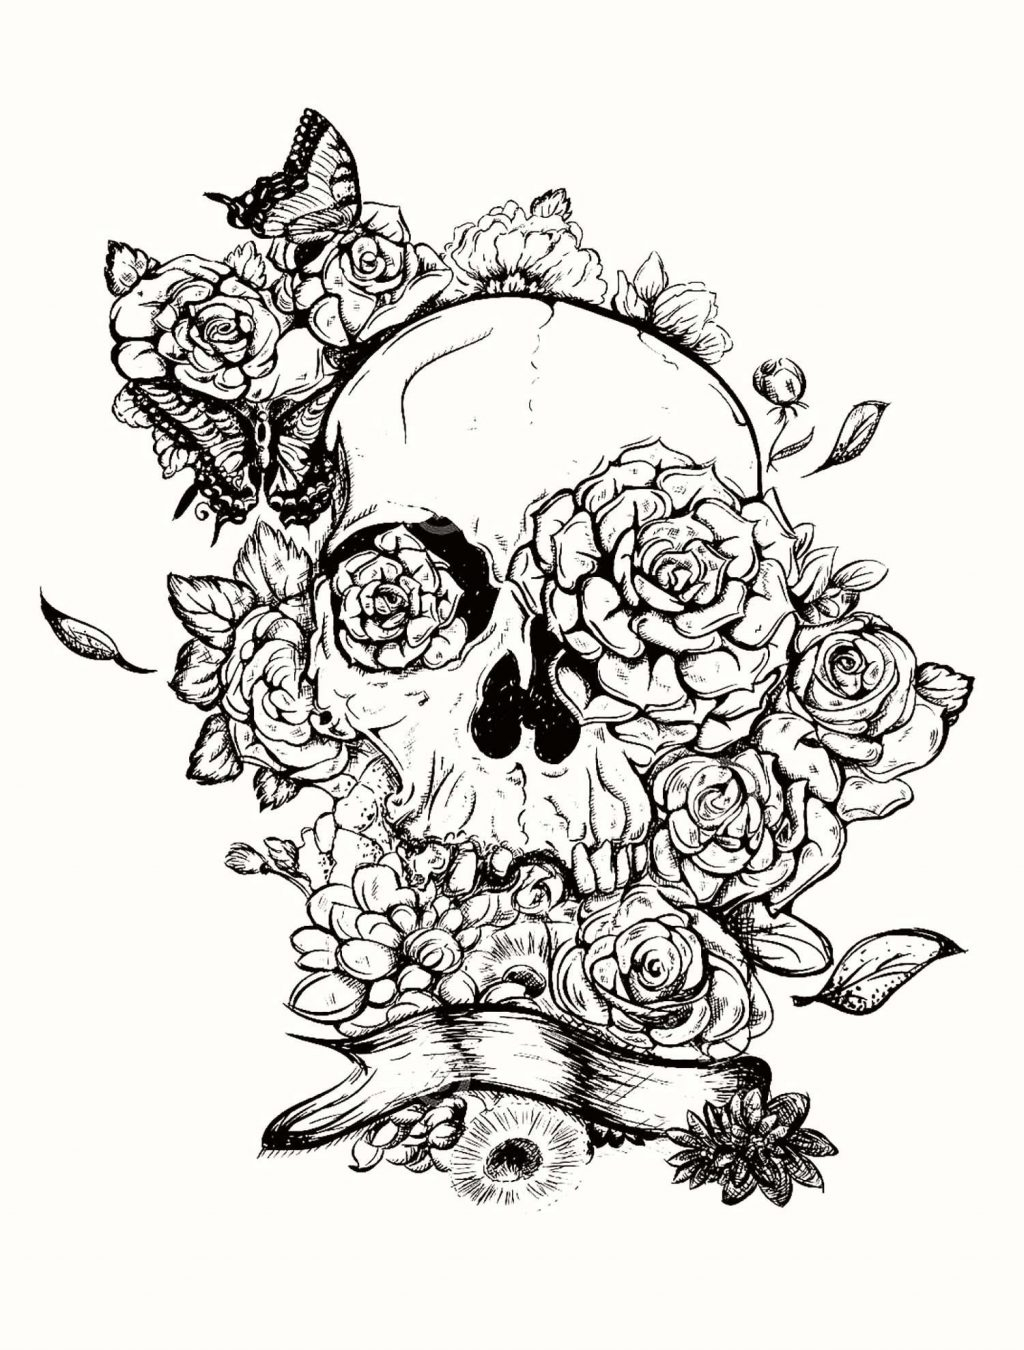 Skull Color Pages Coloring Page Best Candy Skull Coloring Pages Image Ideas Page